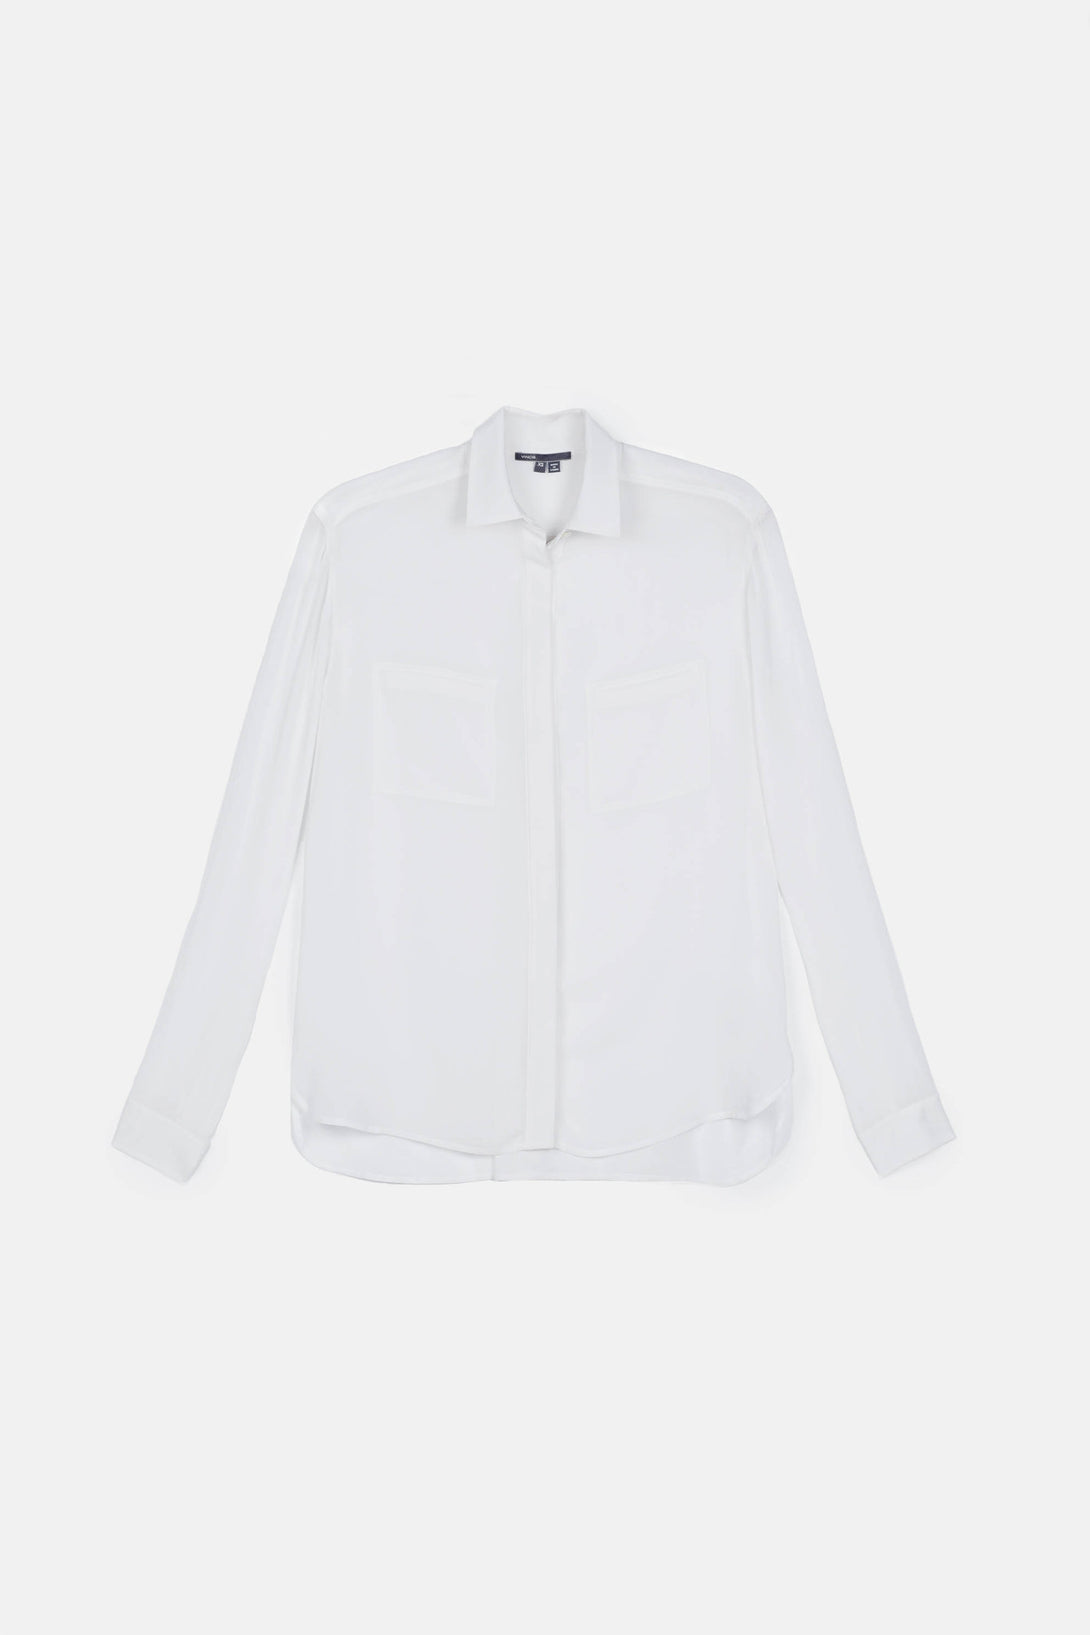 L/S Button Up Shirt - White